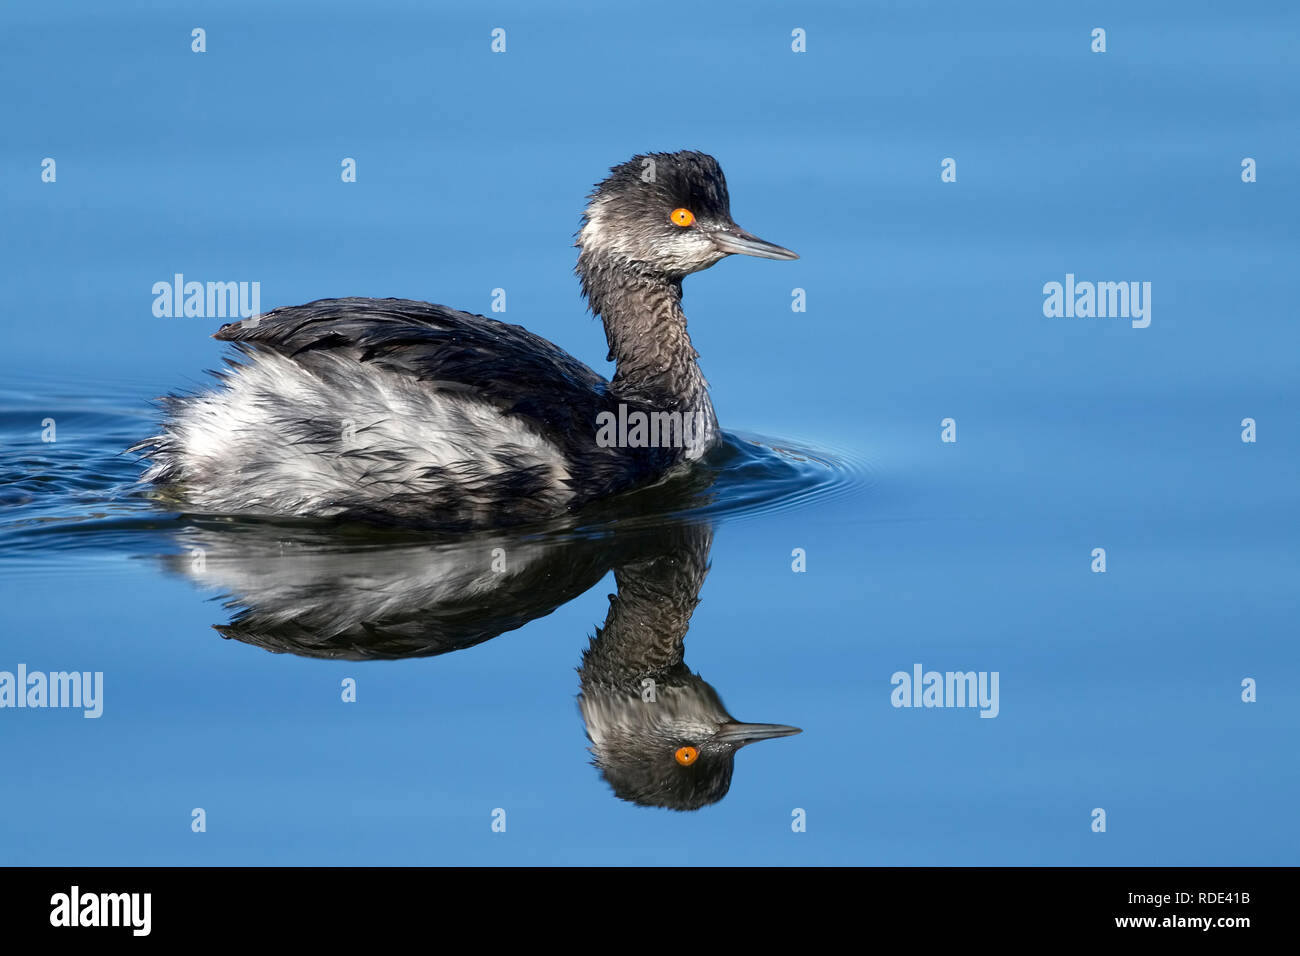 Eared Grebe Reflection in Still Water - Stock Image